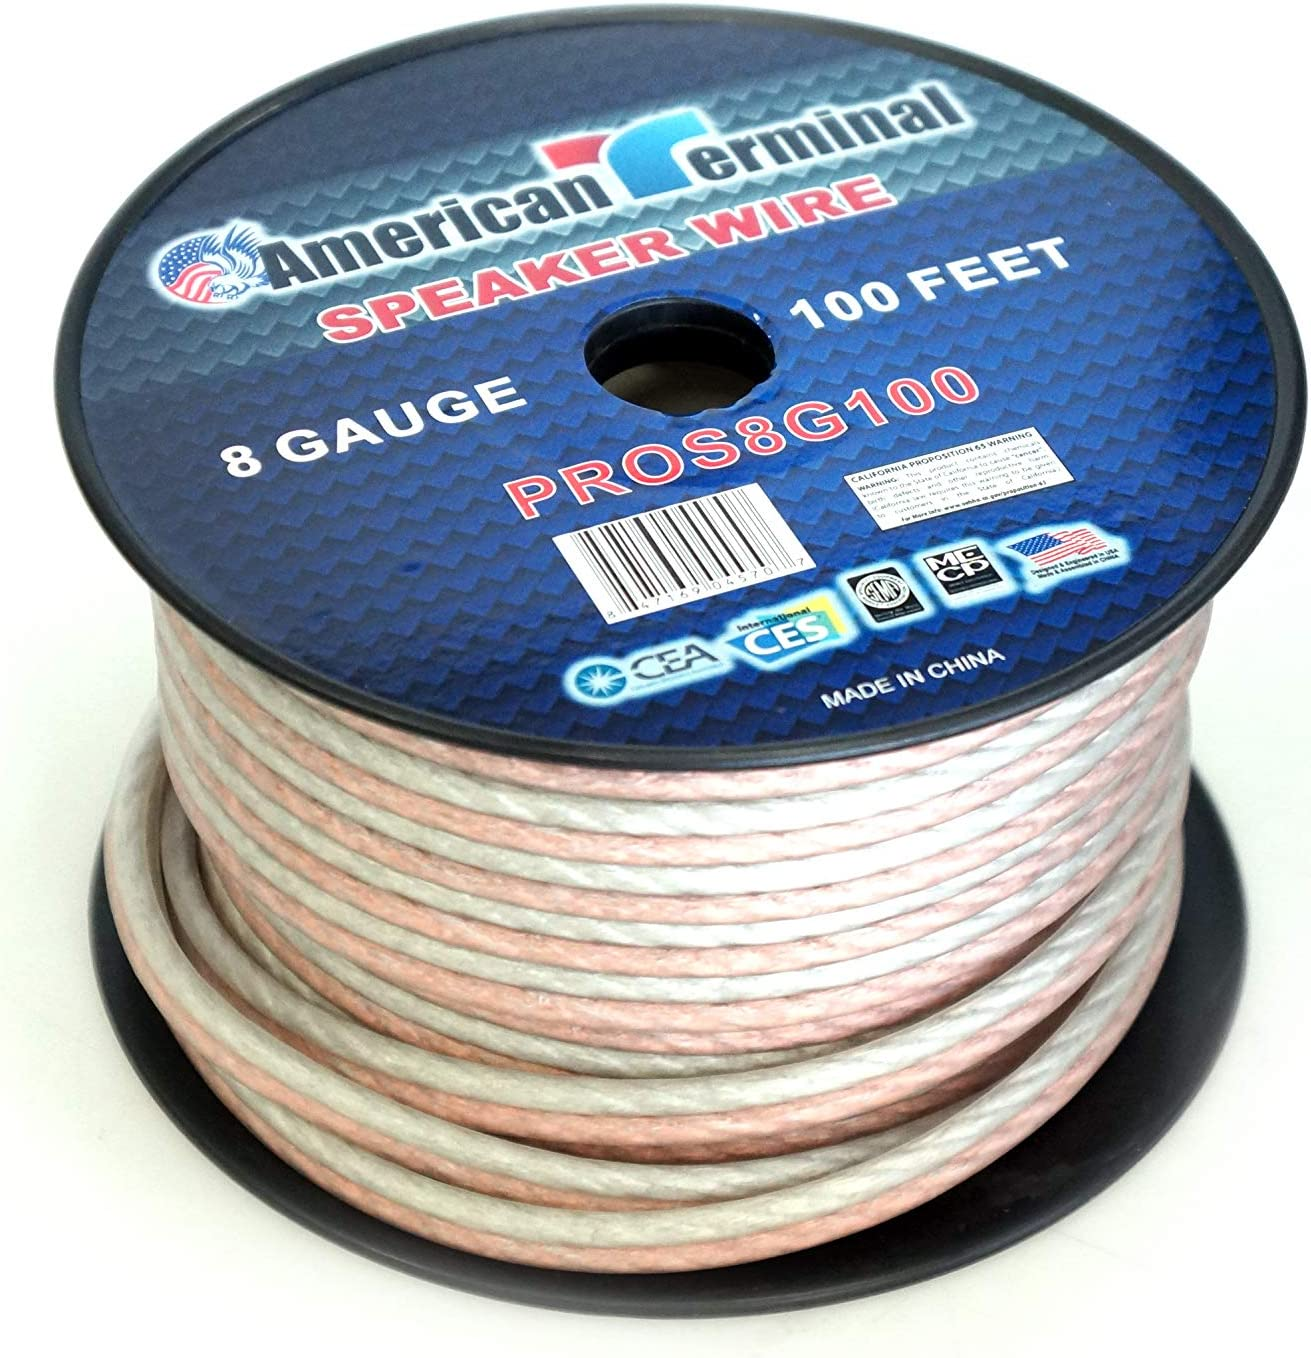 of 8 Gauge Pro Series Clear Speaker Wire American Terminal PROS8G100 100 ft